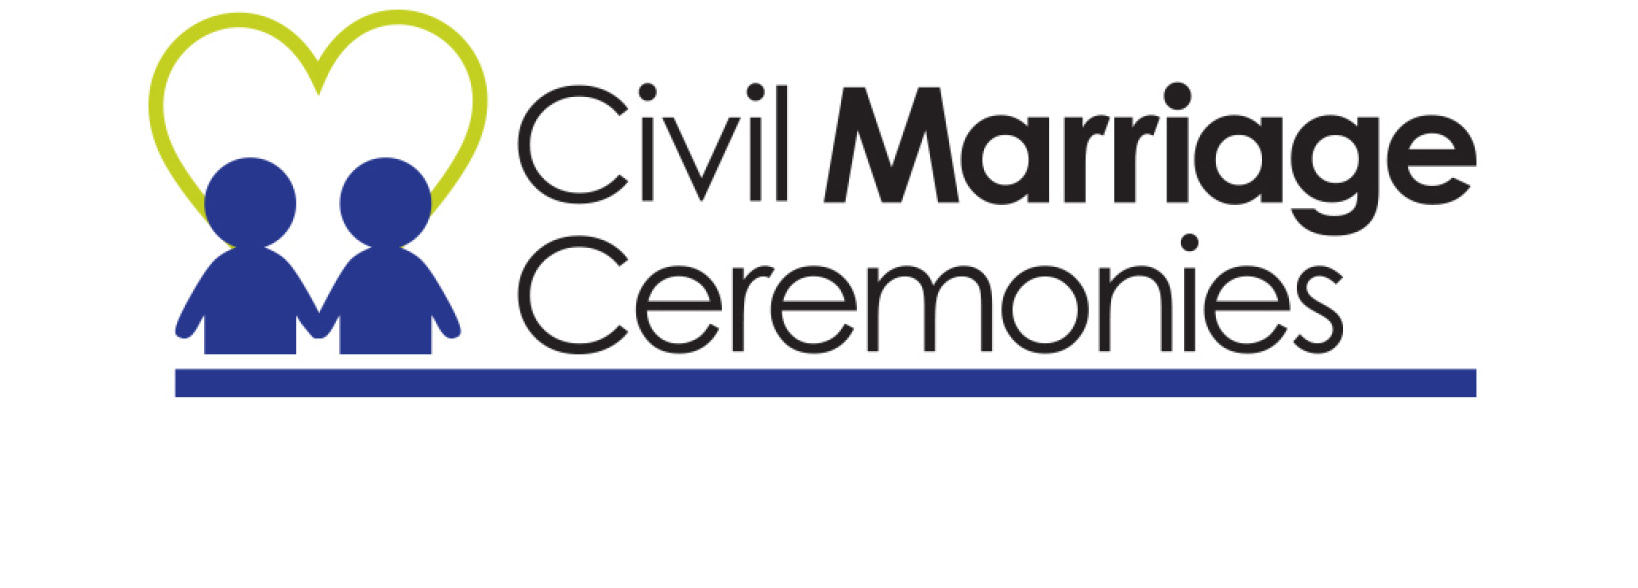 The City of Oshawa is pleased to offer civil marriage services to those who are looking for a simple but tasteful non-religious ceremony. Ceremonies take place in the Council Chamber at Oshawa City Hall on Wednesday and Friday afternoons and on Saturday mornings. image